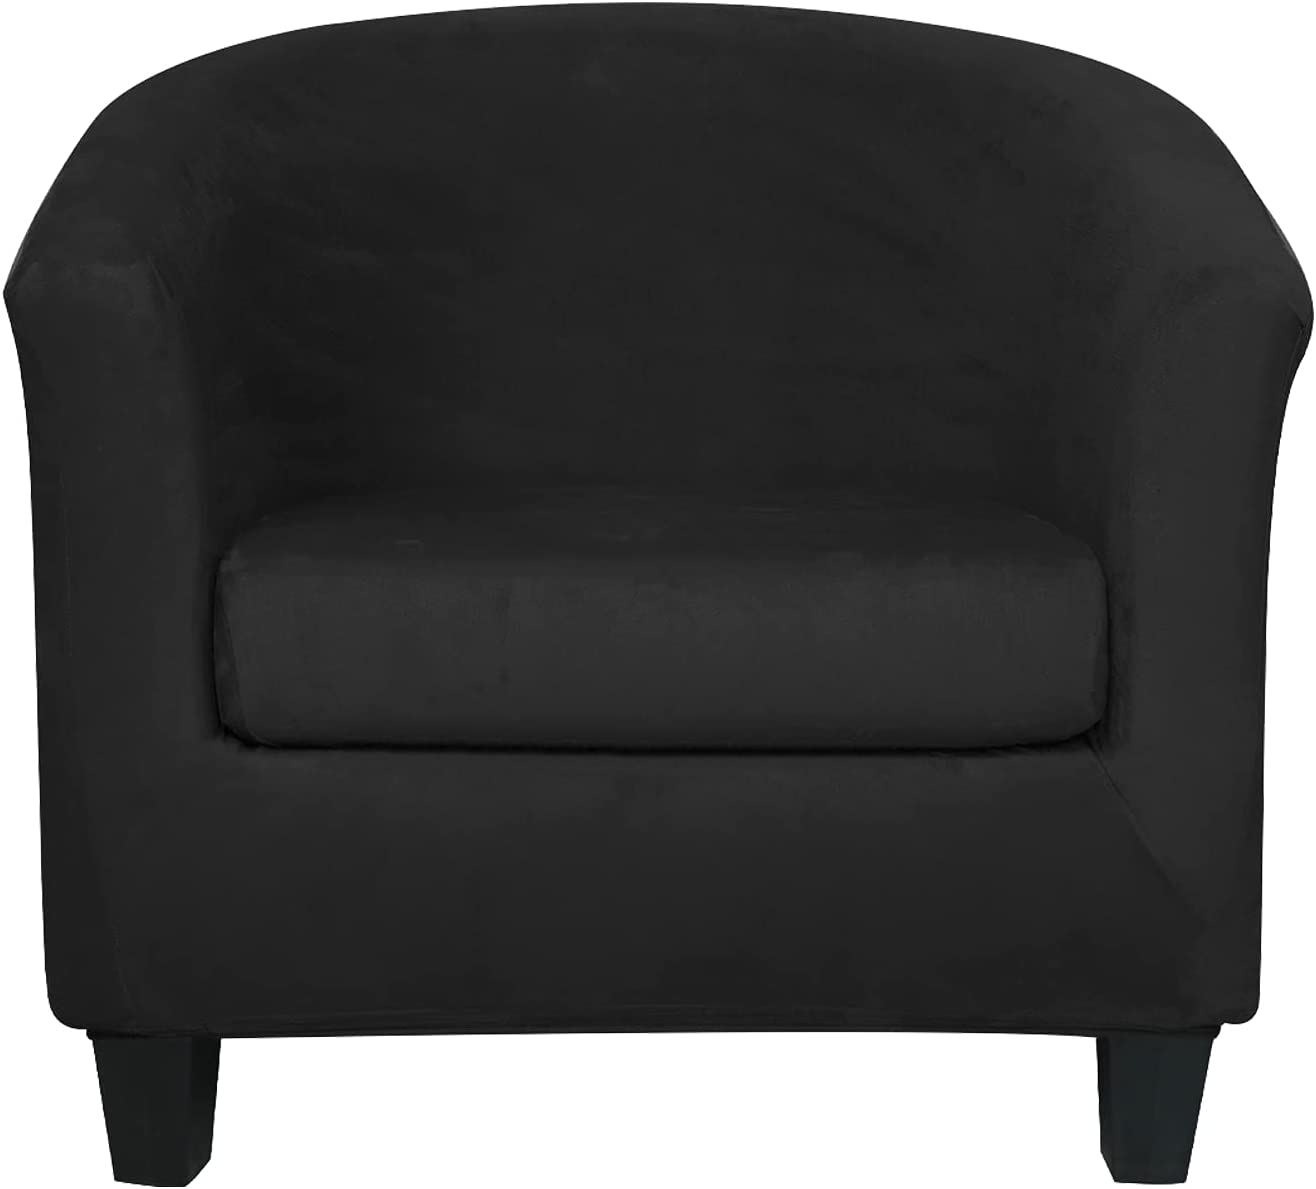 2 Pieces Velvet Tub Chair Covers with Cushion Cover Stretch Soft Removable Tub Chair Slipcovers Armchair Sofa Couch Furniture Protector for Living Room Club Bar Counter (Black)